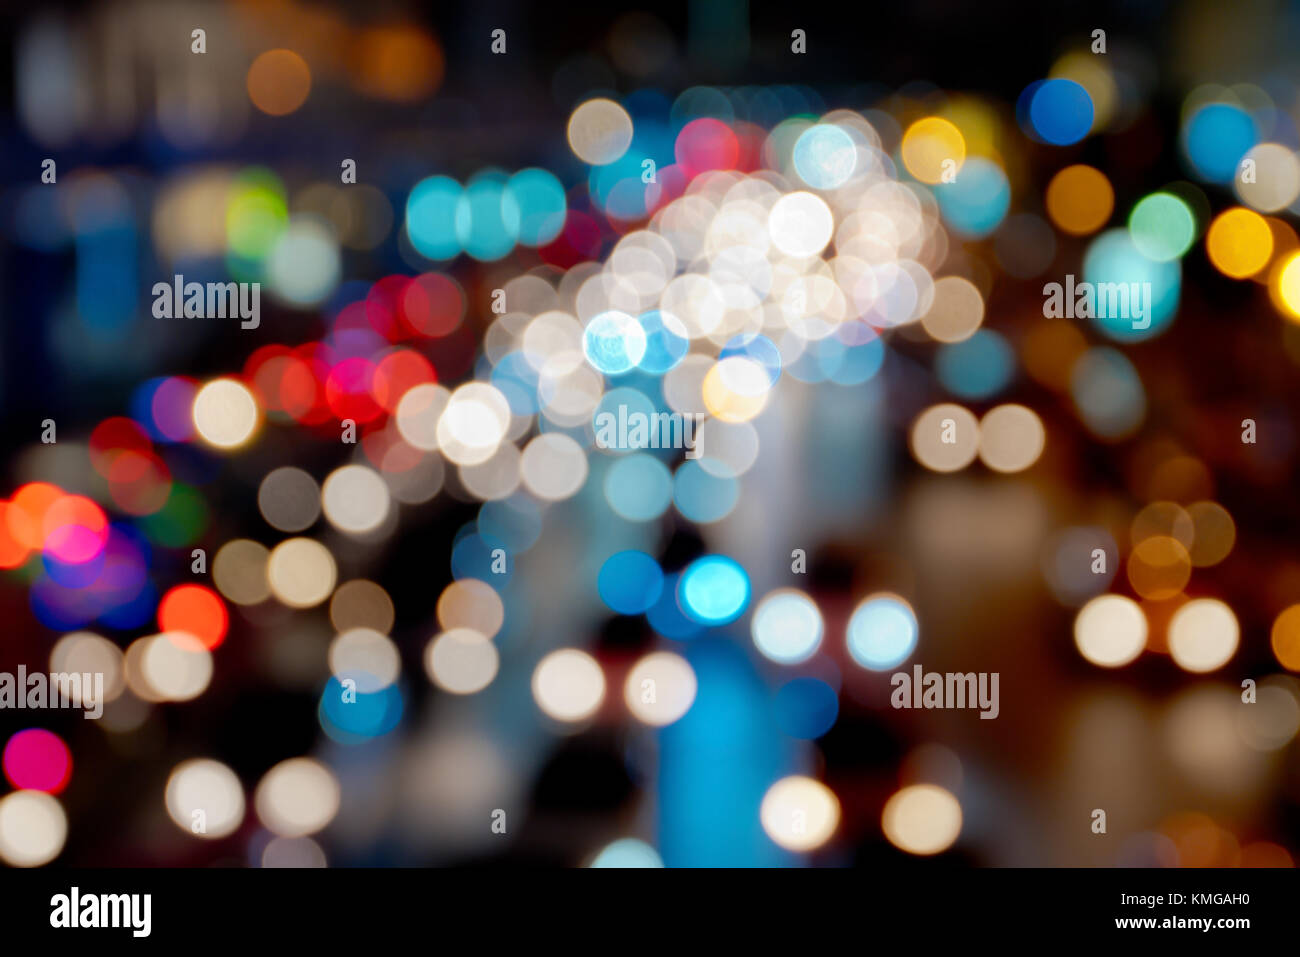 Bokeh full jpg us